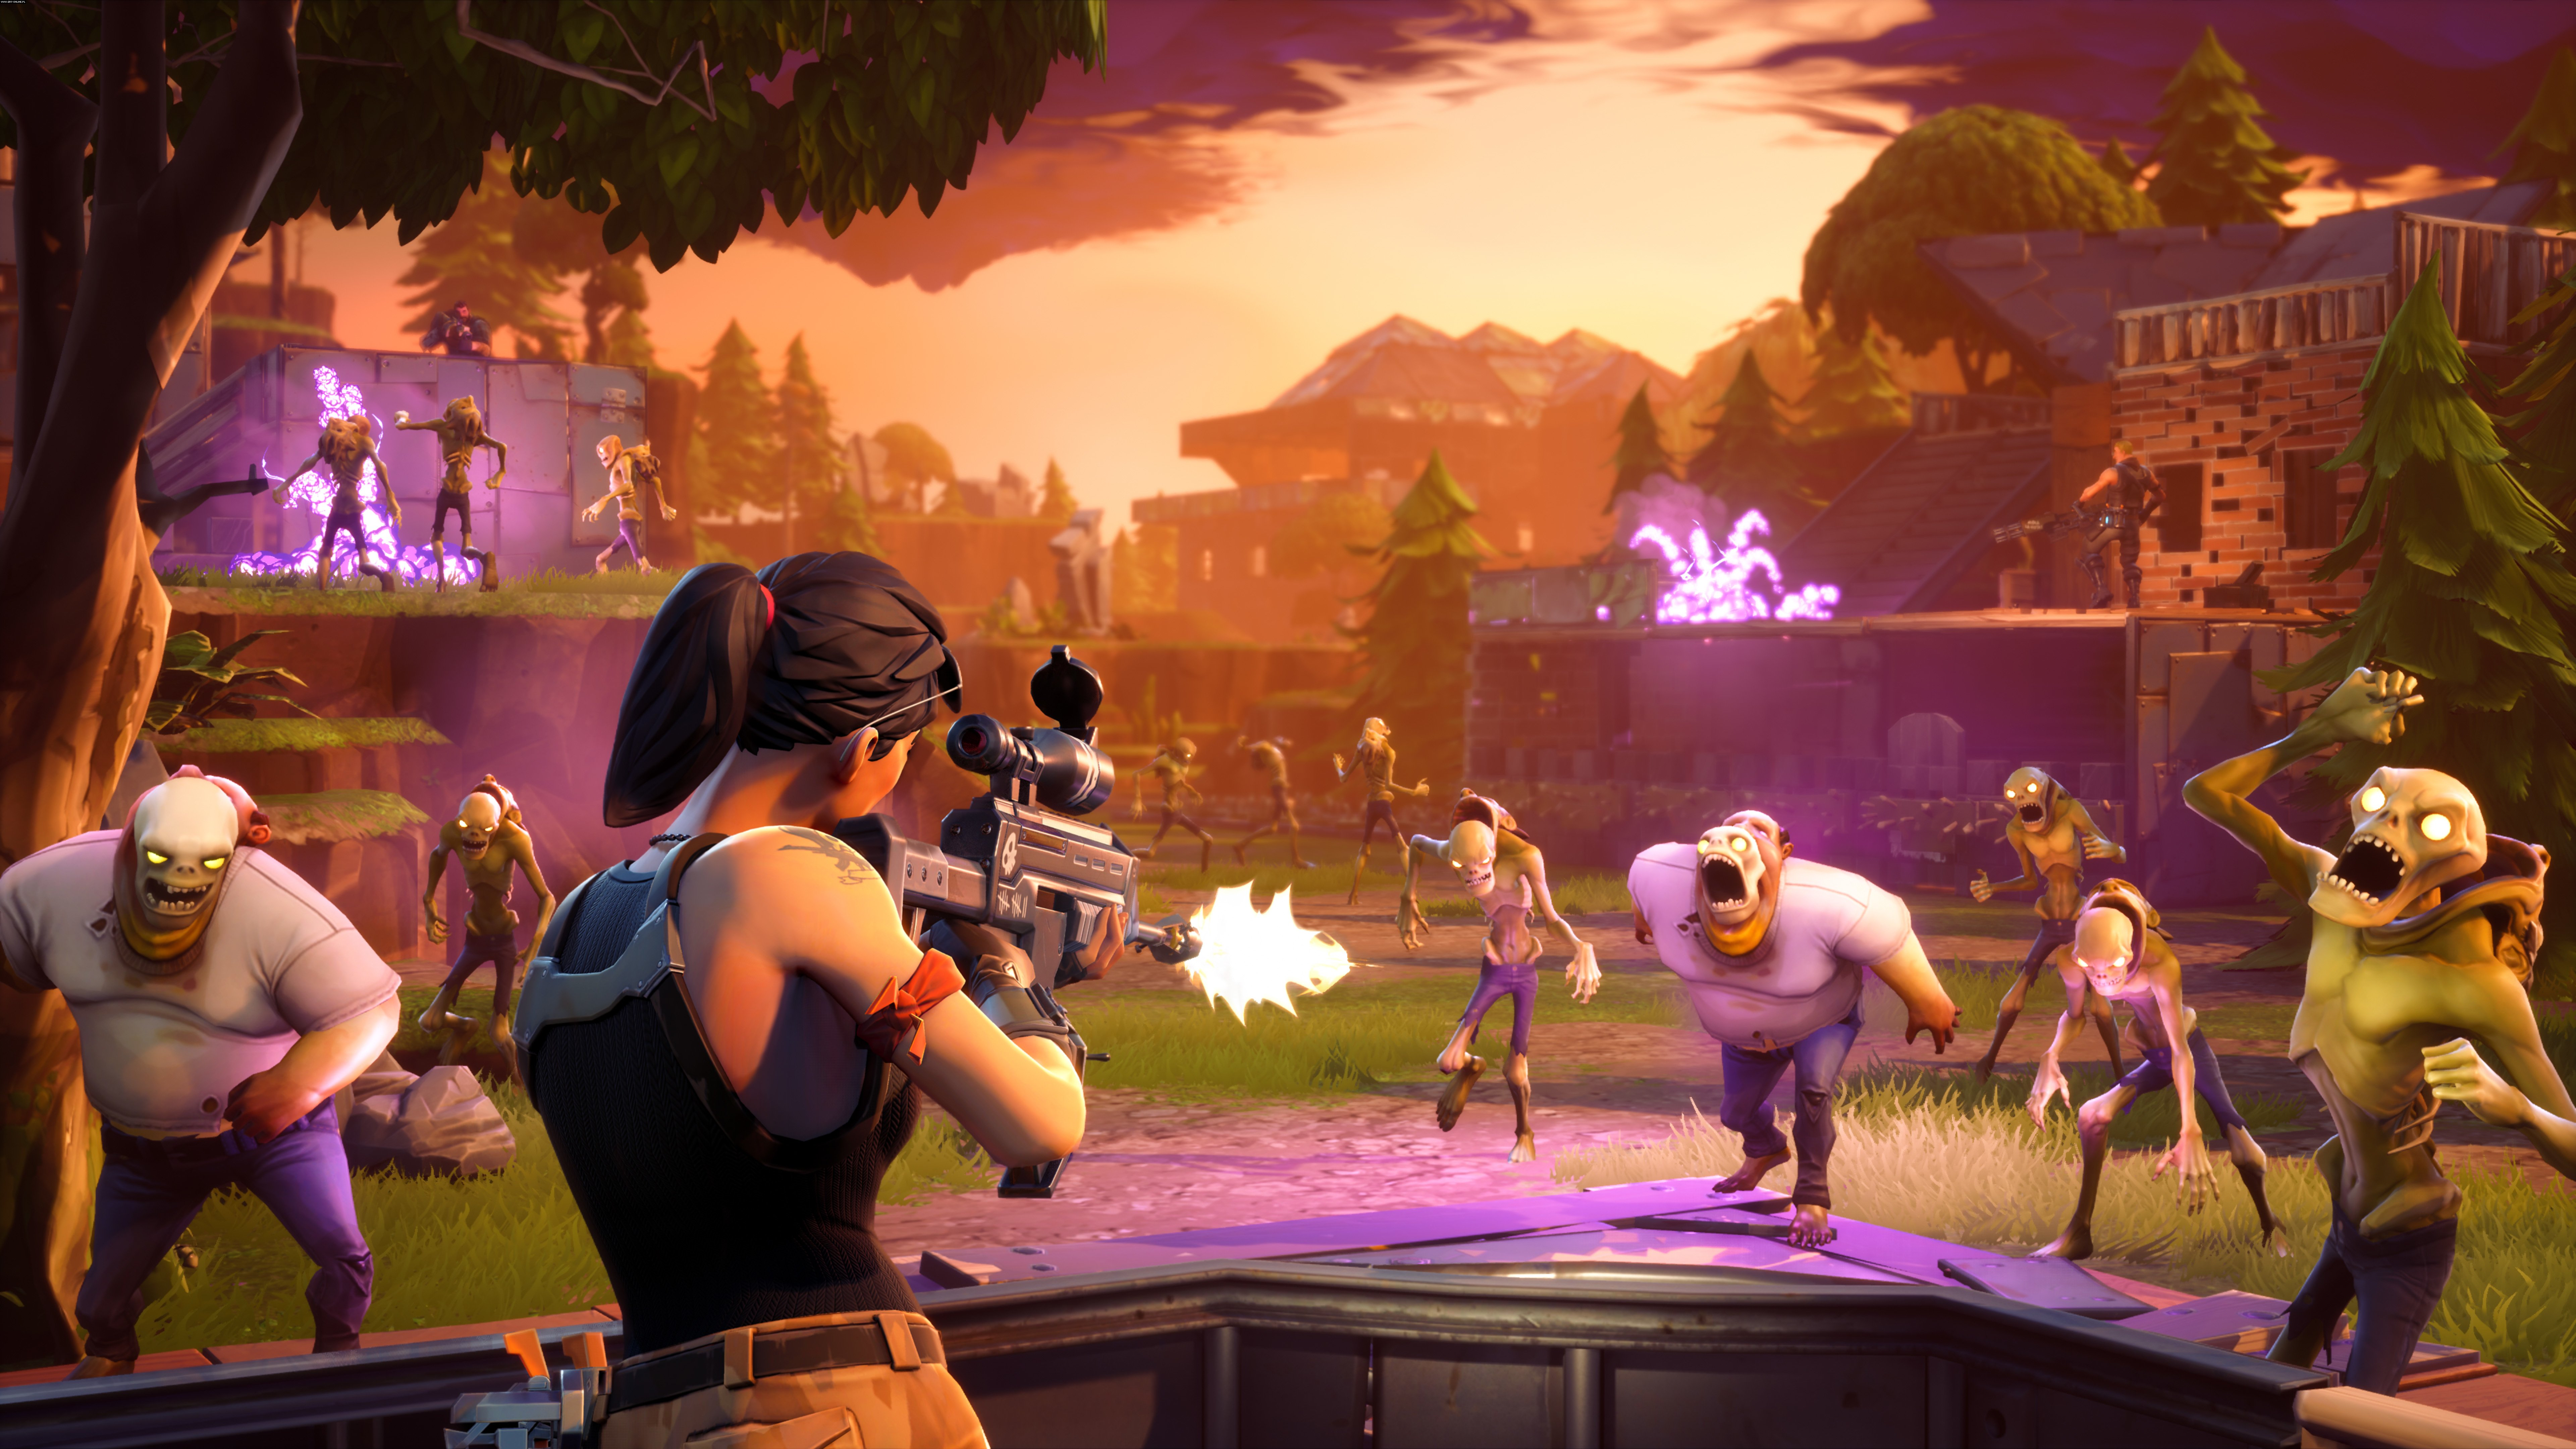 Fortnite PC Gry Screen 17/50, Epic Games